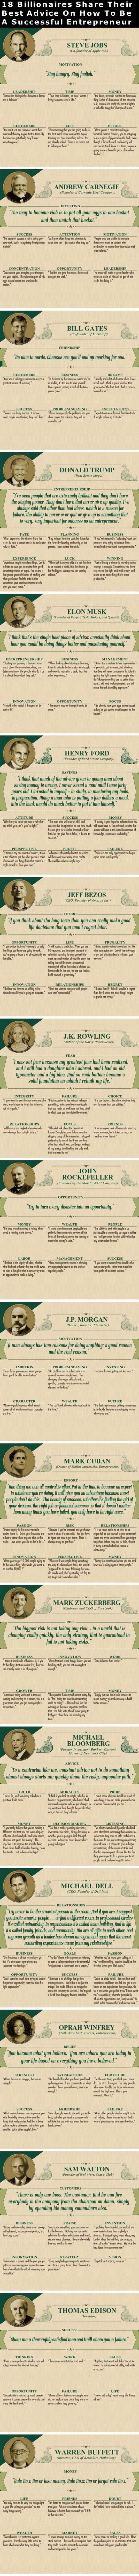 [Image] 18 Billionaires Share Their Best Advice On How To Become A Successful Entrepreneur